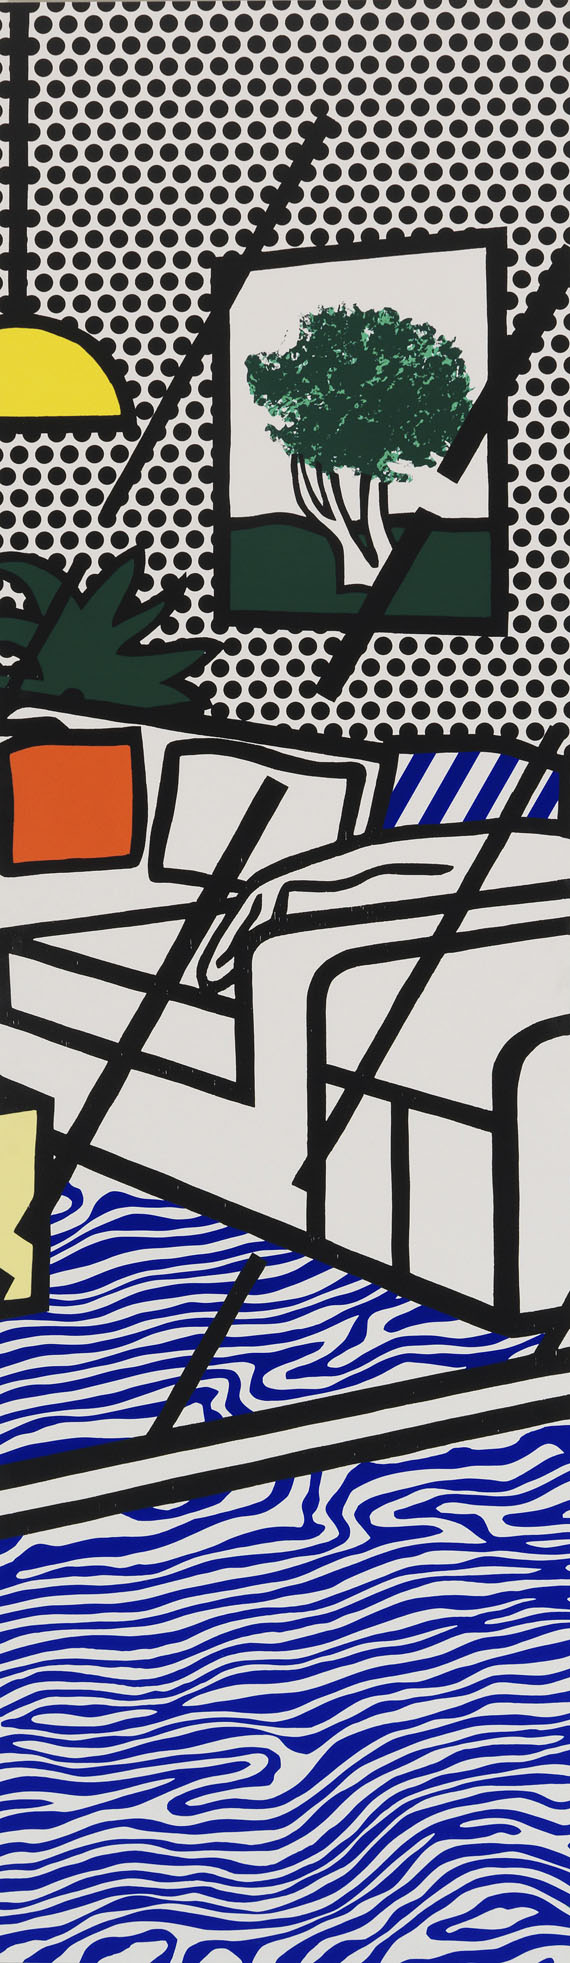 Roy Lichtenstein - Wallpaper with Blue Floor Interior - Weitere Abbildung